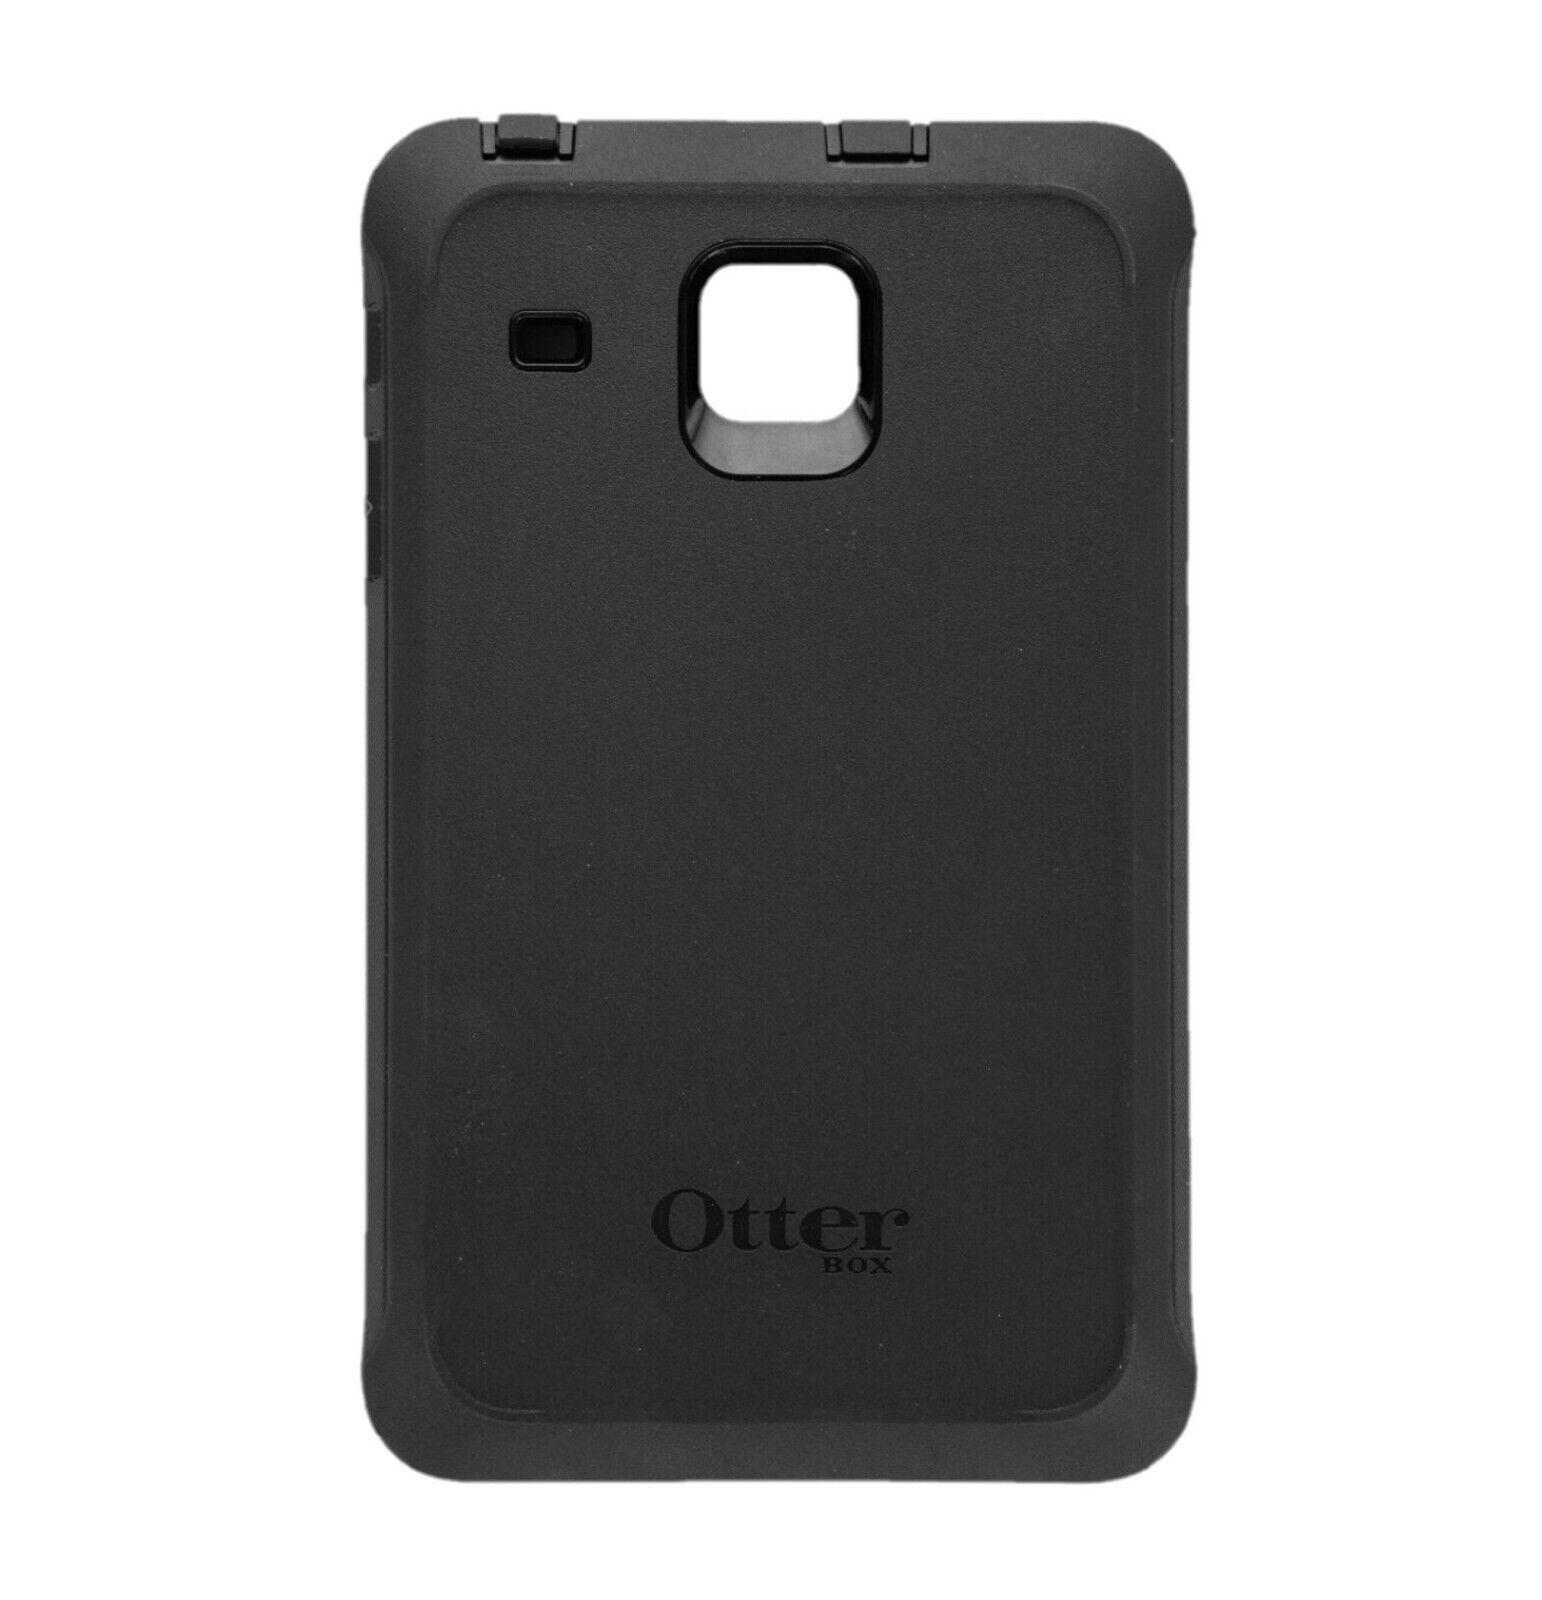 new york 3f116 50c36 Details about OtterBox Defender Series Protective Case for Samsung Galaxy  Tab E 8.0 - Black